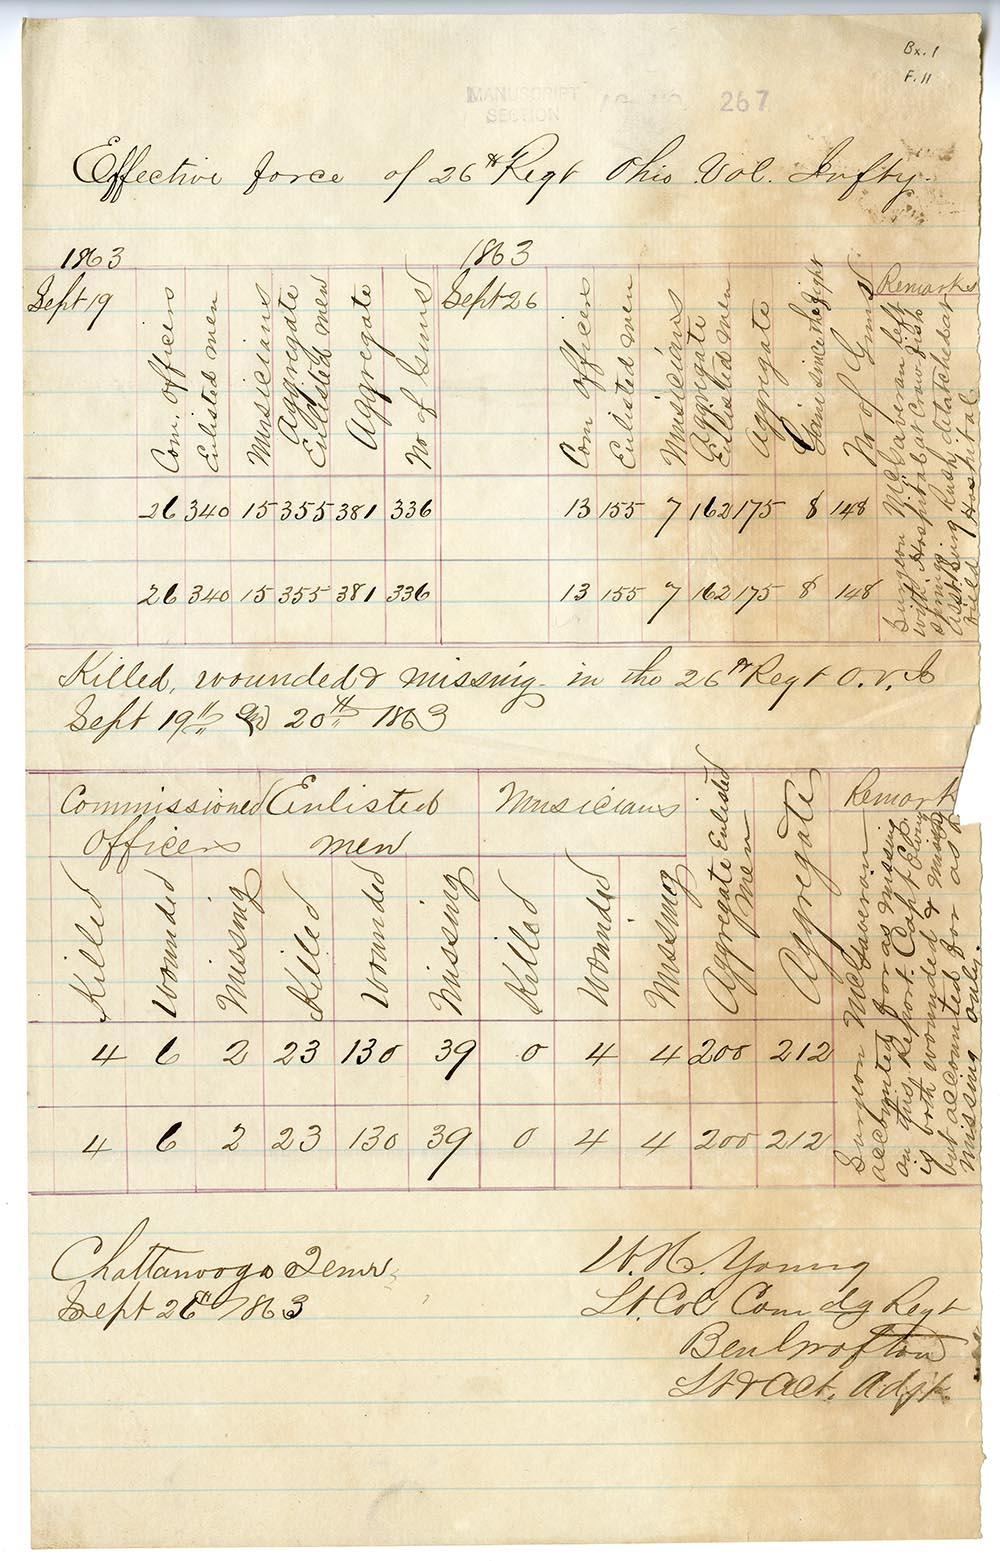 Report of the killed, wounded, and missing of the 26th Ohio Volunteer Infantry at the Battle of Chickamauga